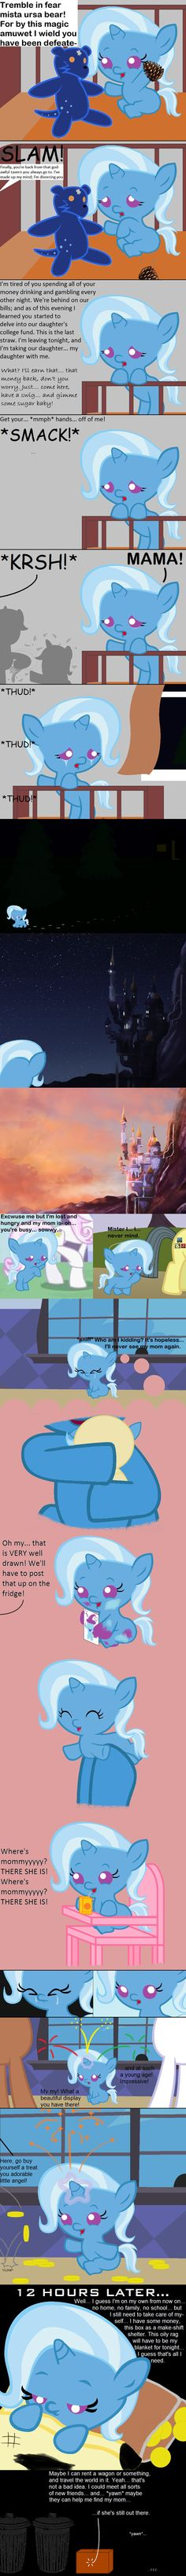 From this I get an understanding of why Trixie was the way she was. Really makes yah think, don't it?